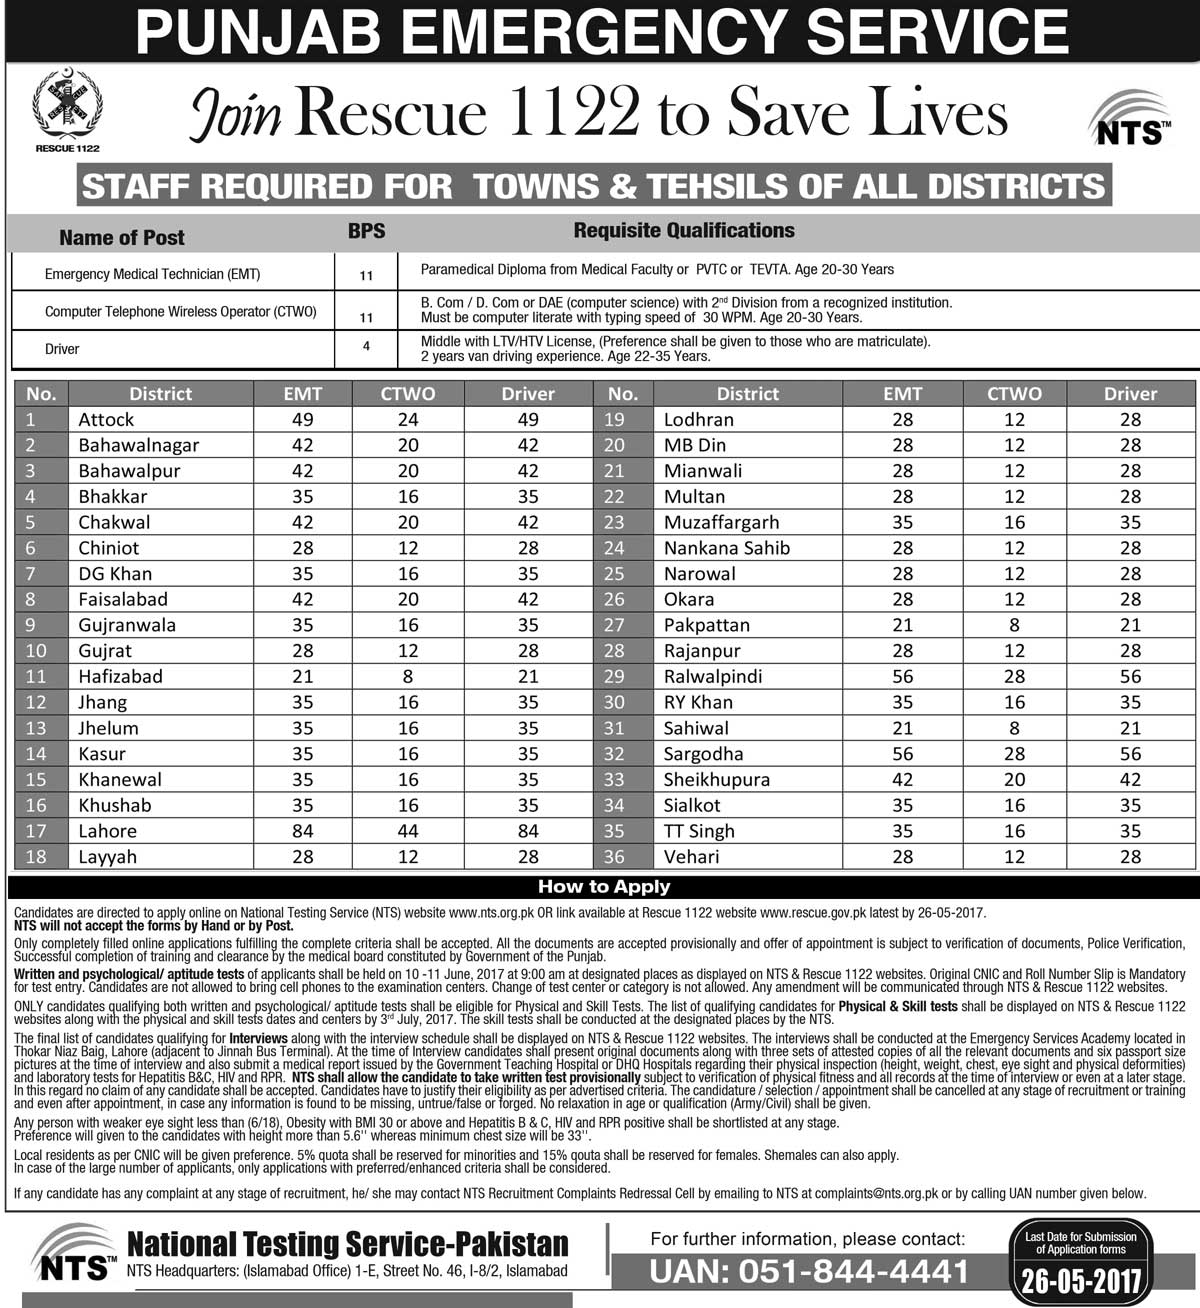 Announcement of Vacancies in Rescue 1122